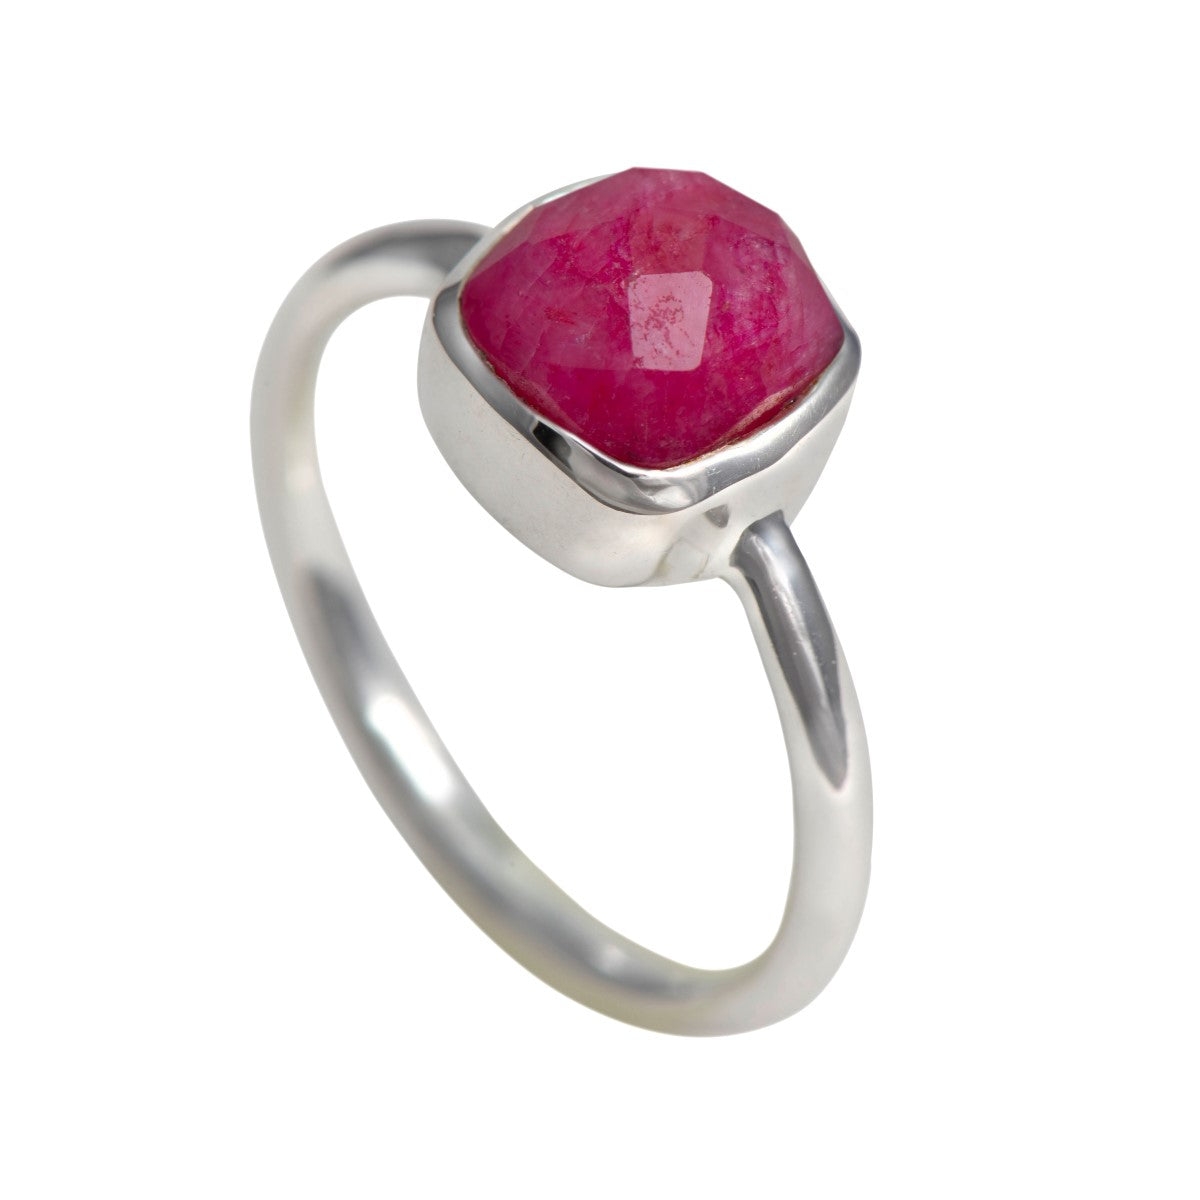 Faceted Square Cut Natural Gemstone Sterling Silver Solitaire Ring - Ruby Quartz